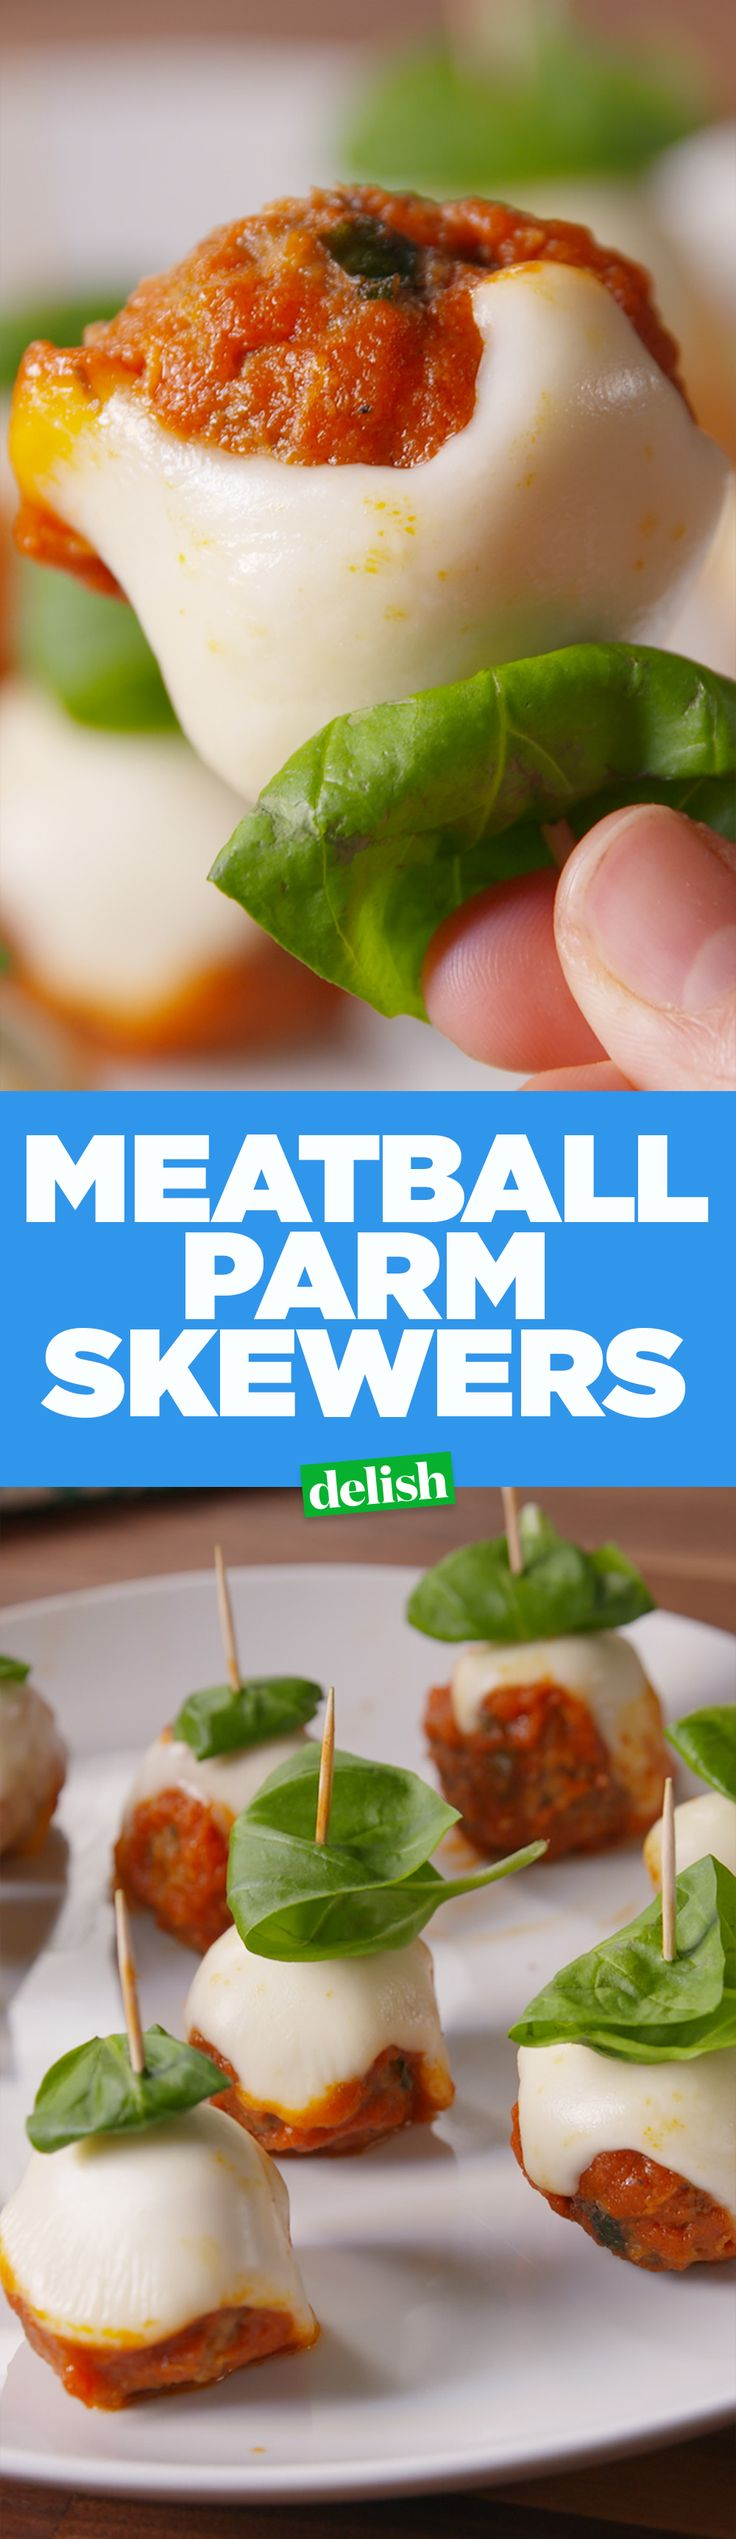 Meatball Parm Skewers give you less carbs and all the satisfaction. Get the recipe on Delish.com.